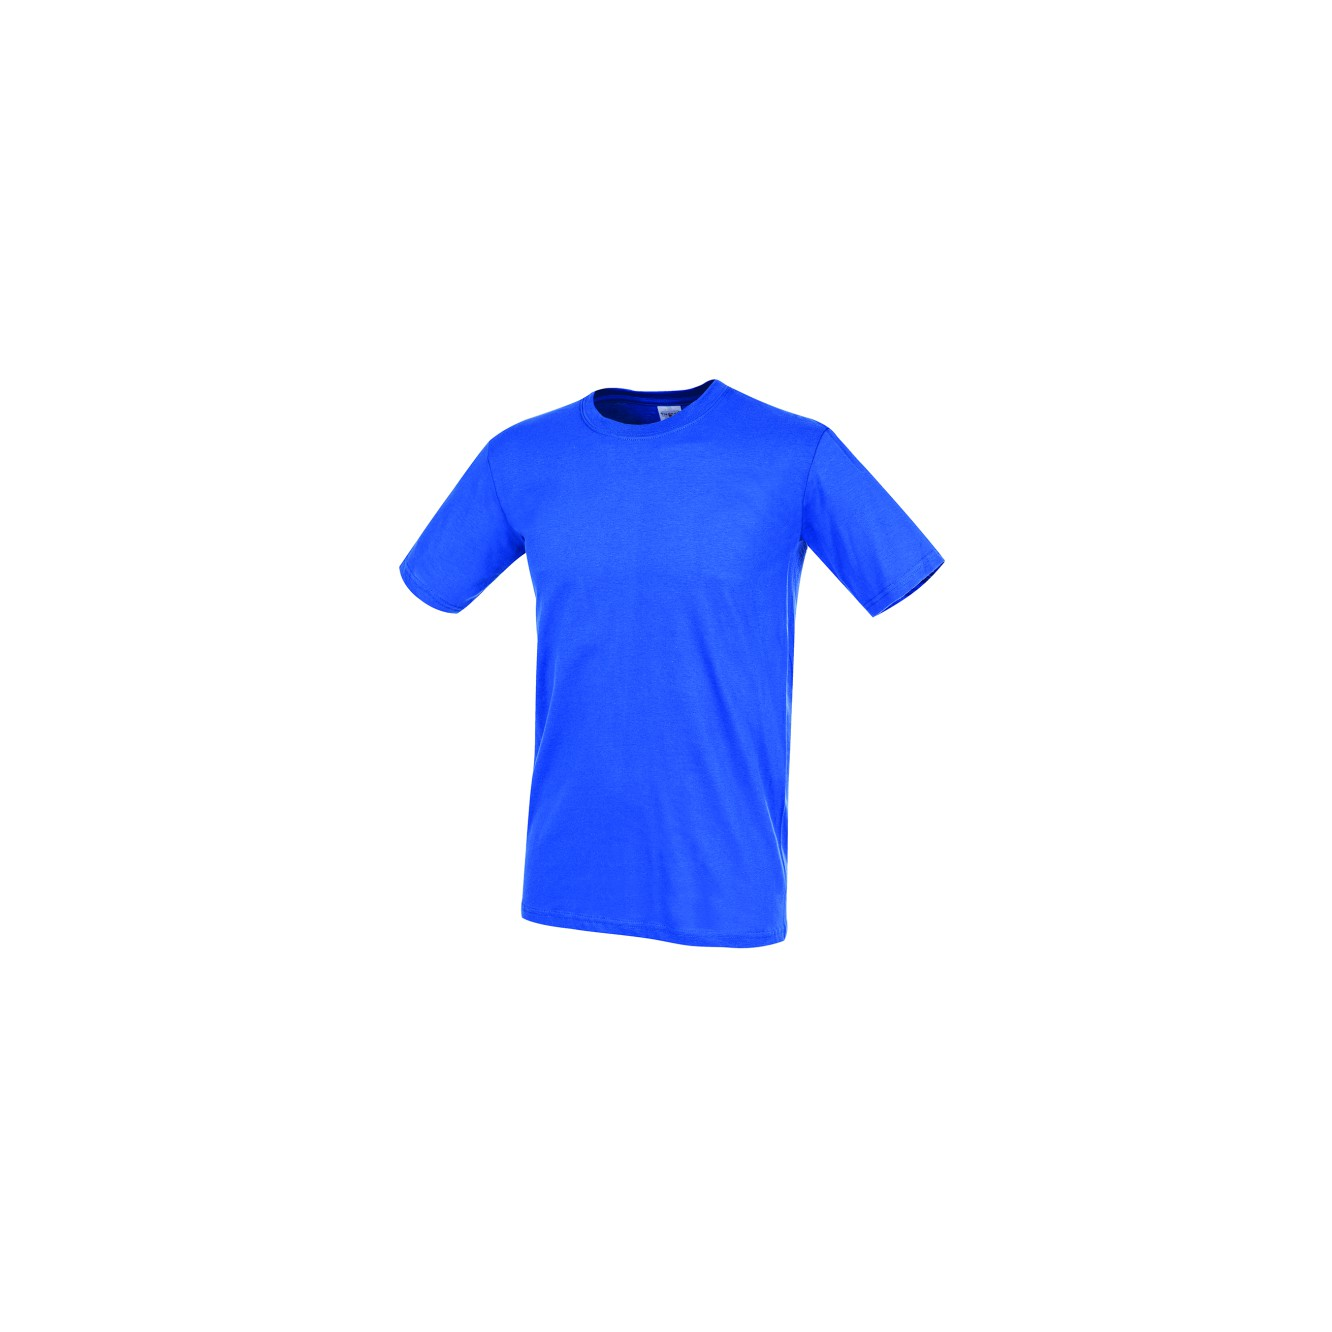 T-shirt classic-t fitted